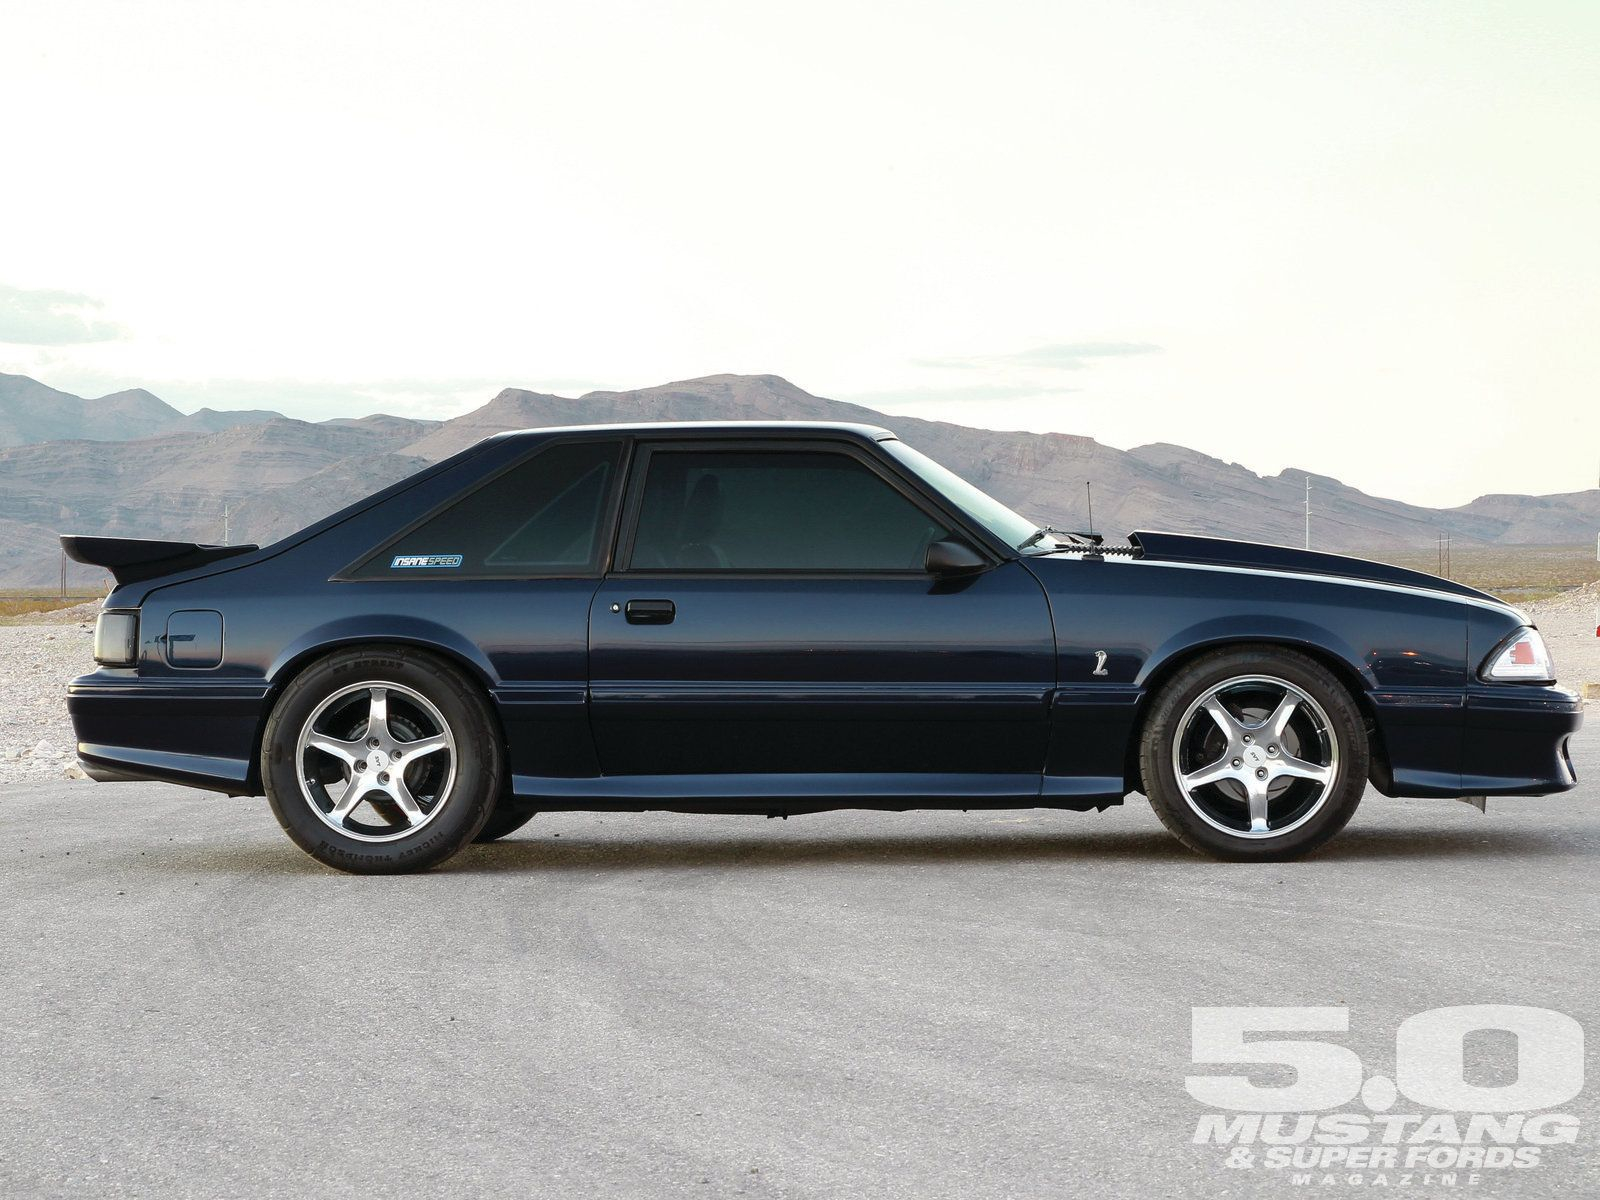 1992 mustang gt turbo 1992 ford fox mustang gt passenger side view photo 2